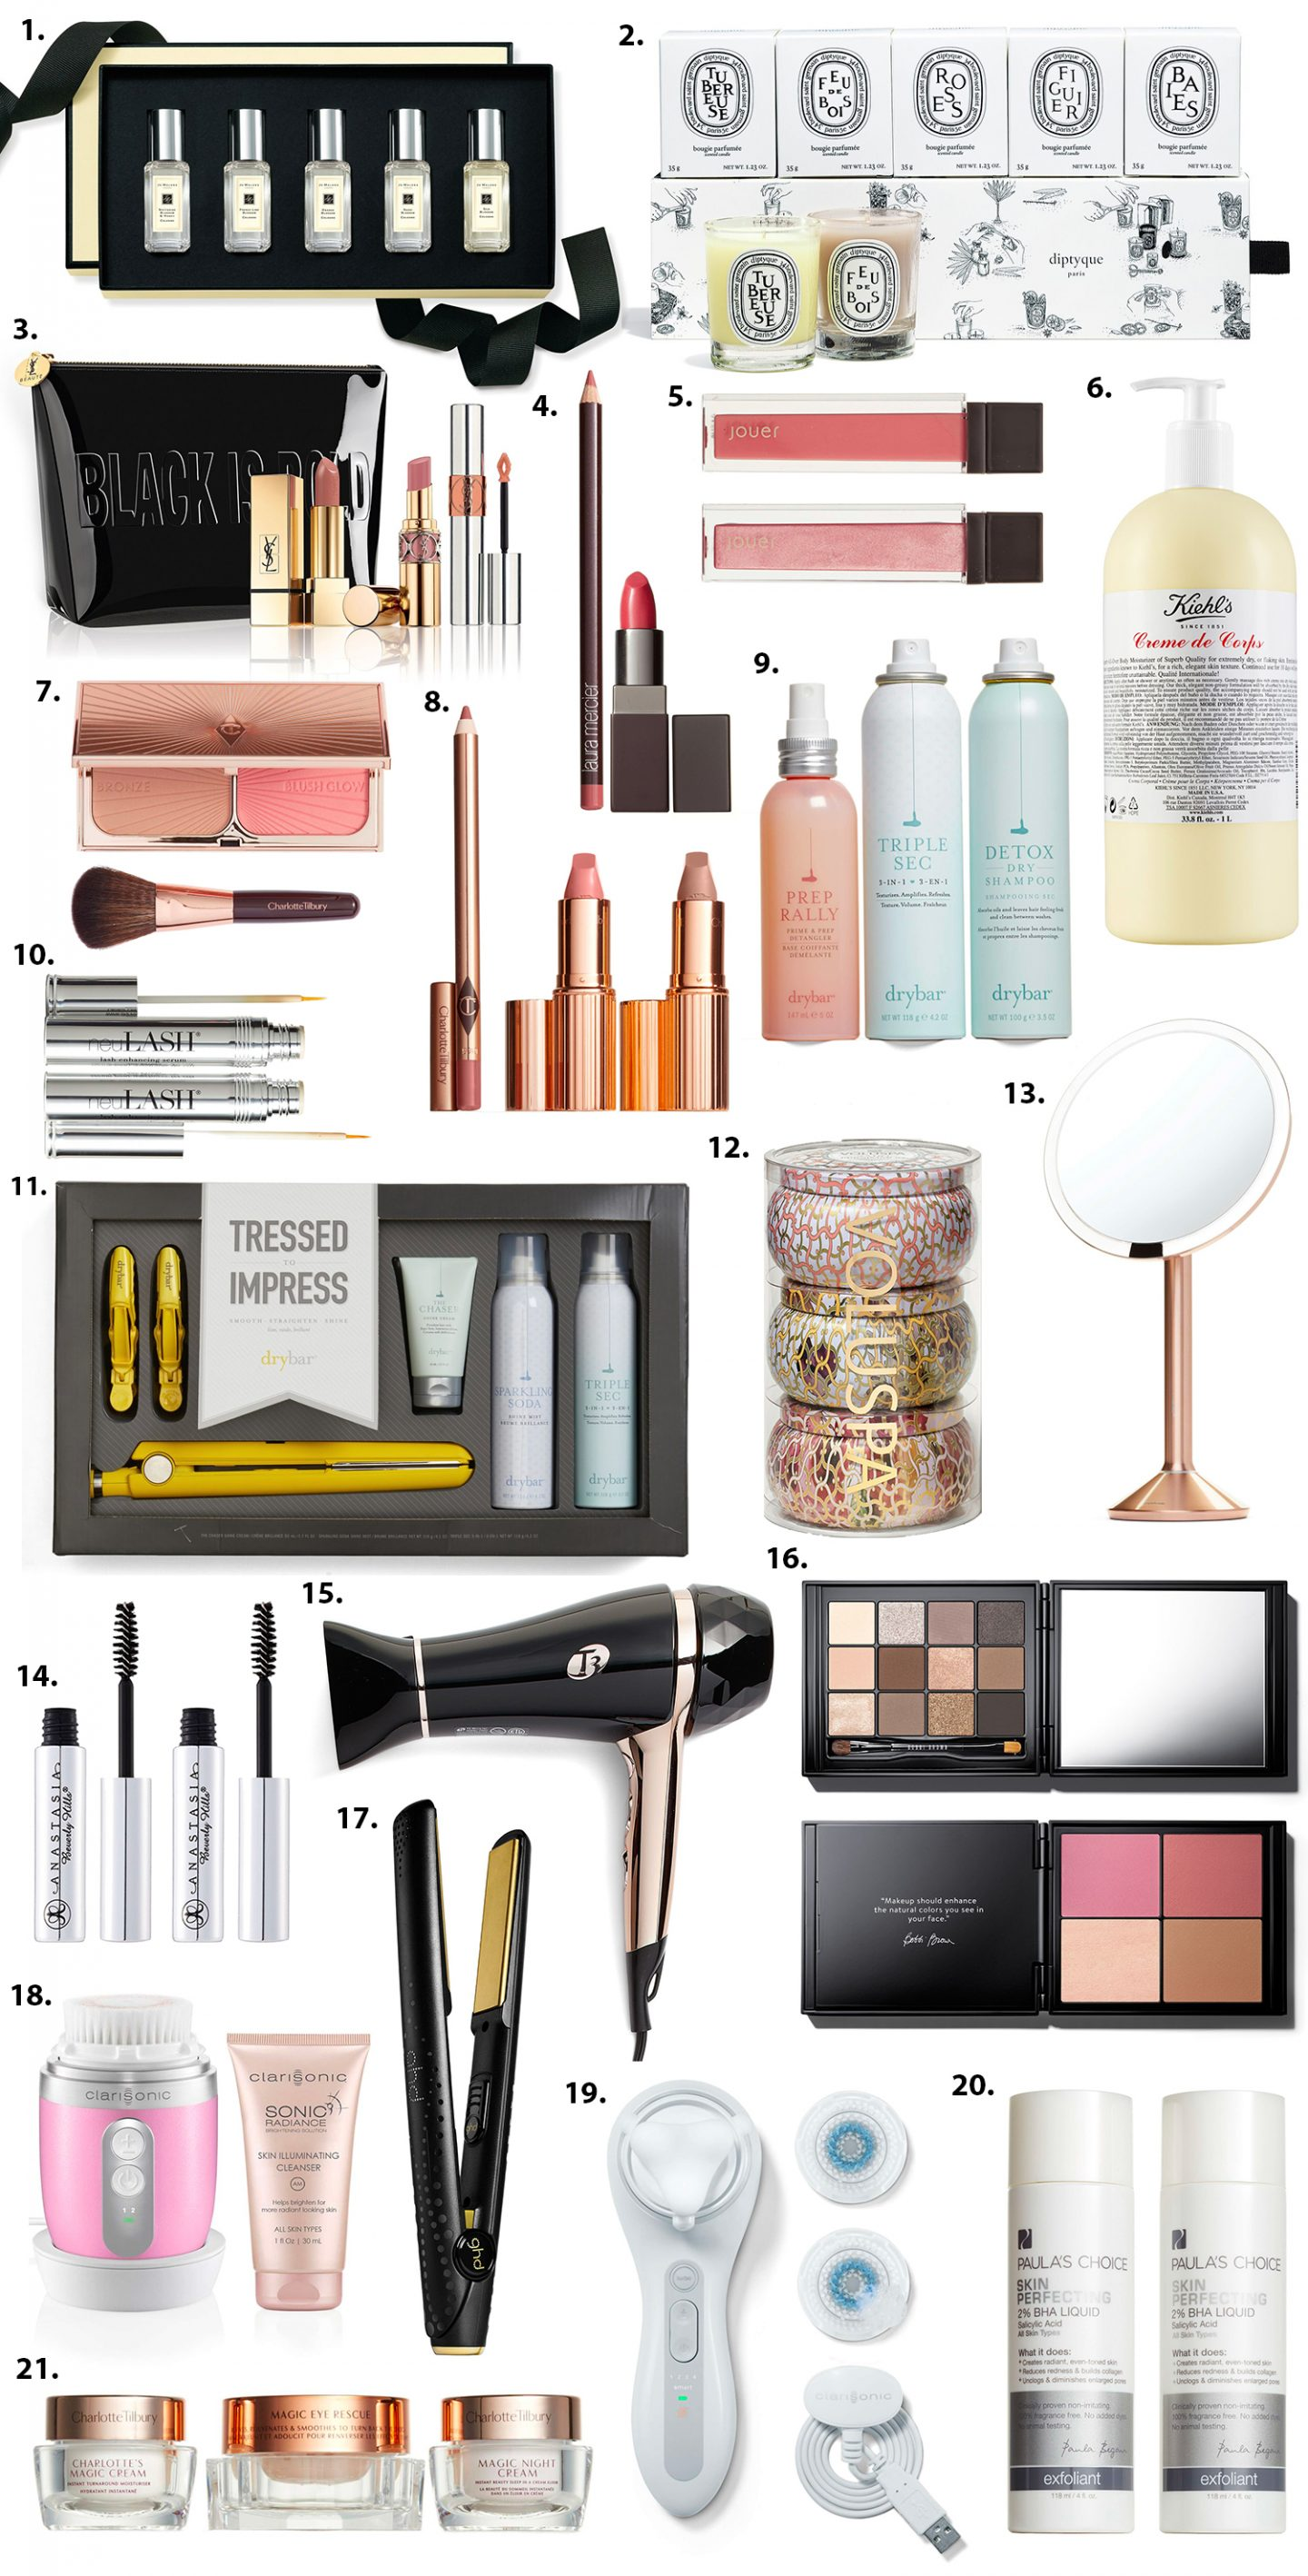 The best beauty deals from the Nordstrom Anniversary Sale